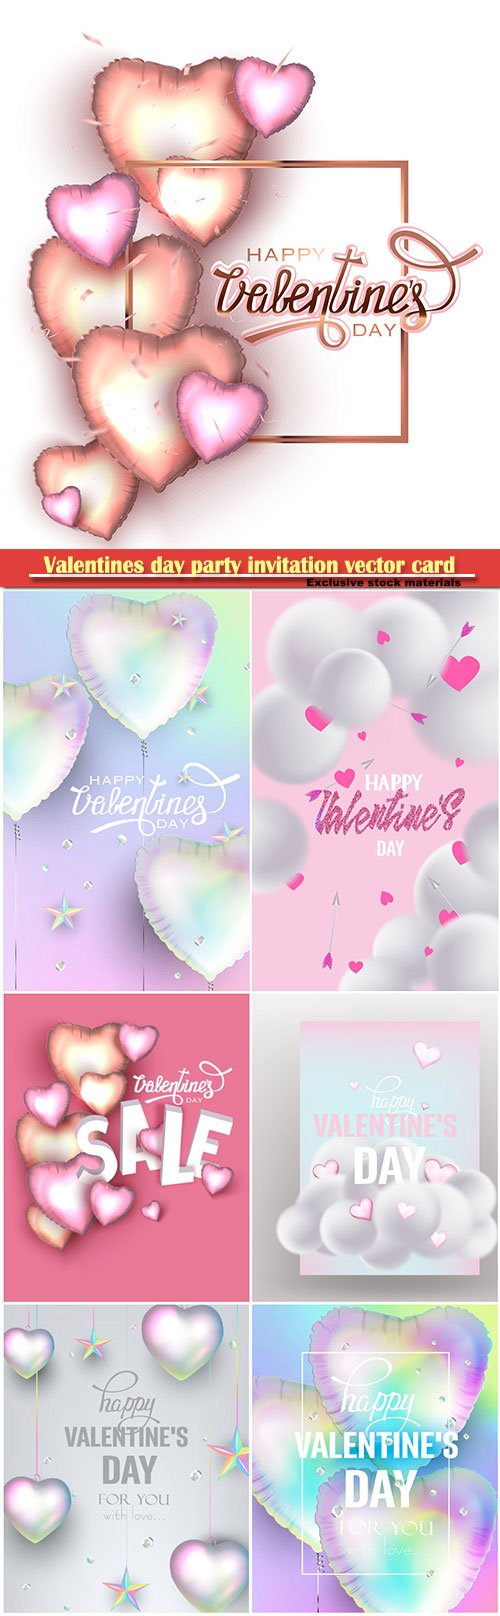 Valentines day party invitation vector card # 6